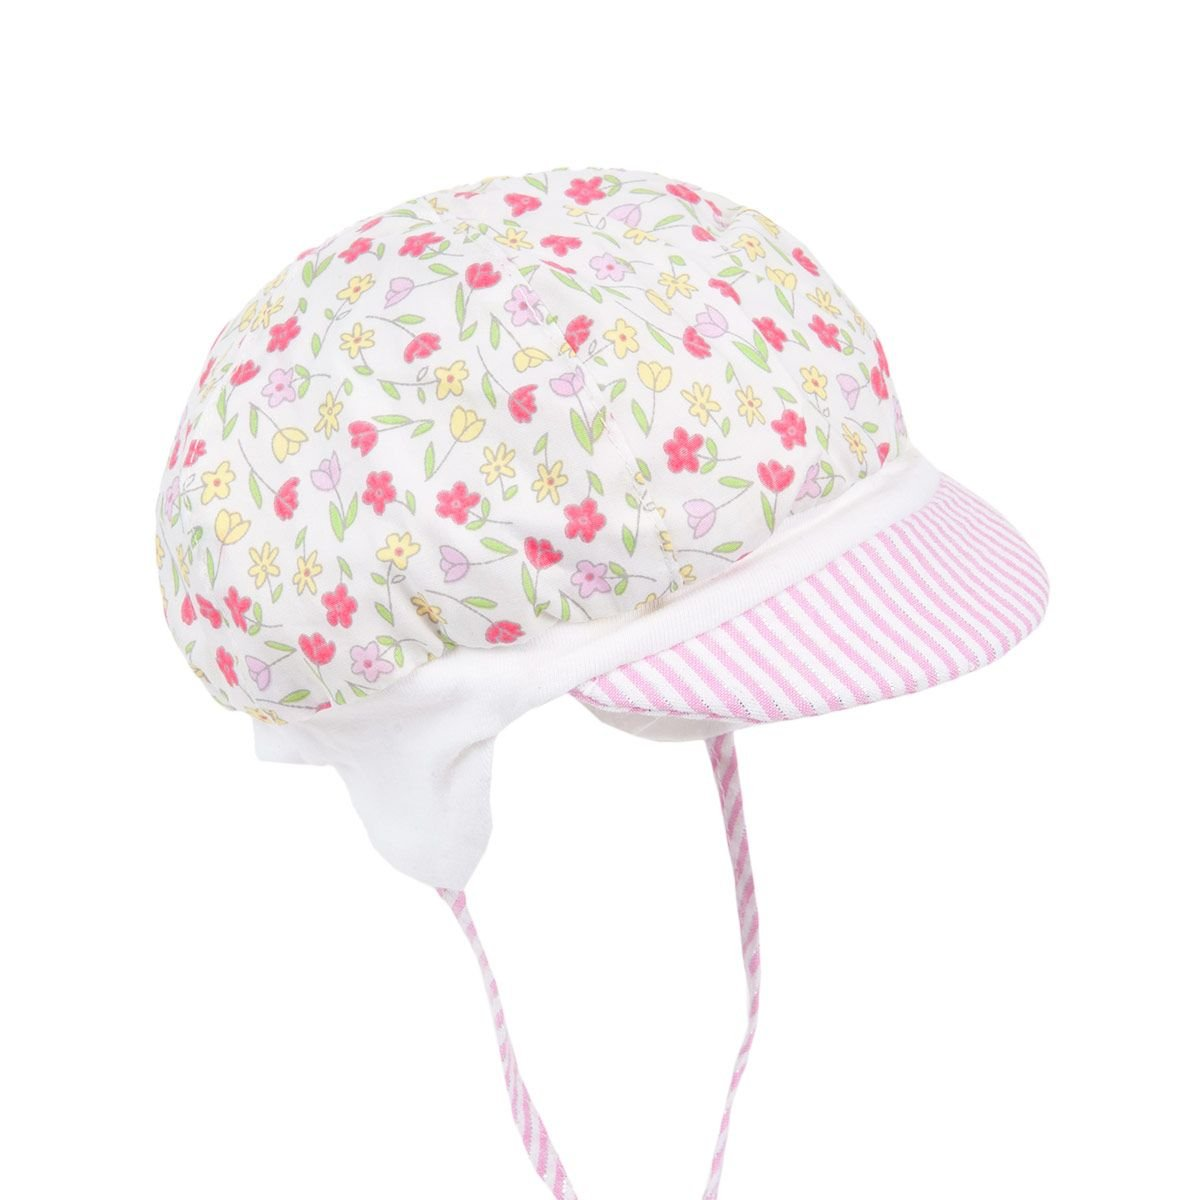 STERNTALER | Baby Shield Cap with earflaps and binding bands --> Online  Hatshop for hats, caps, headbands, gloves and sc...